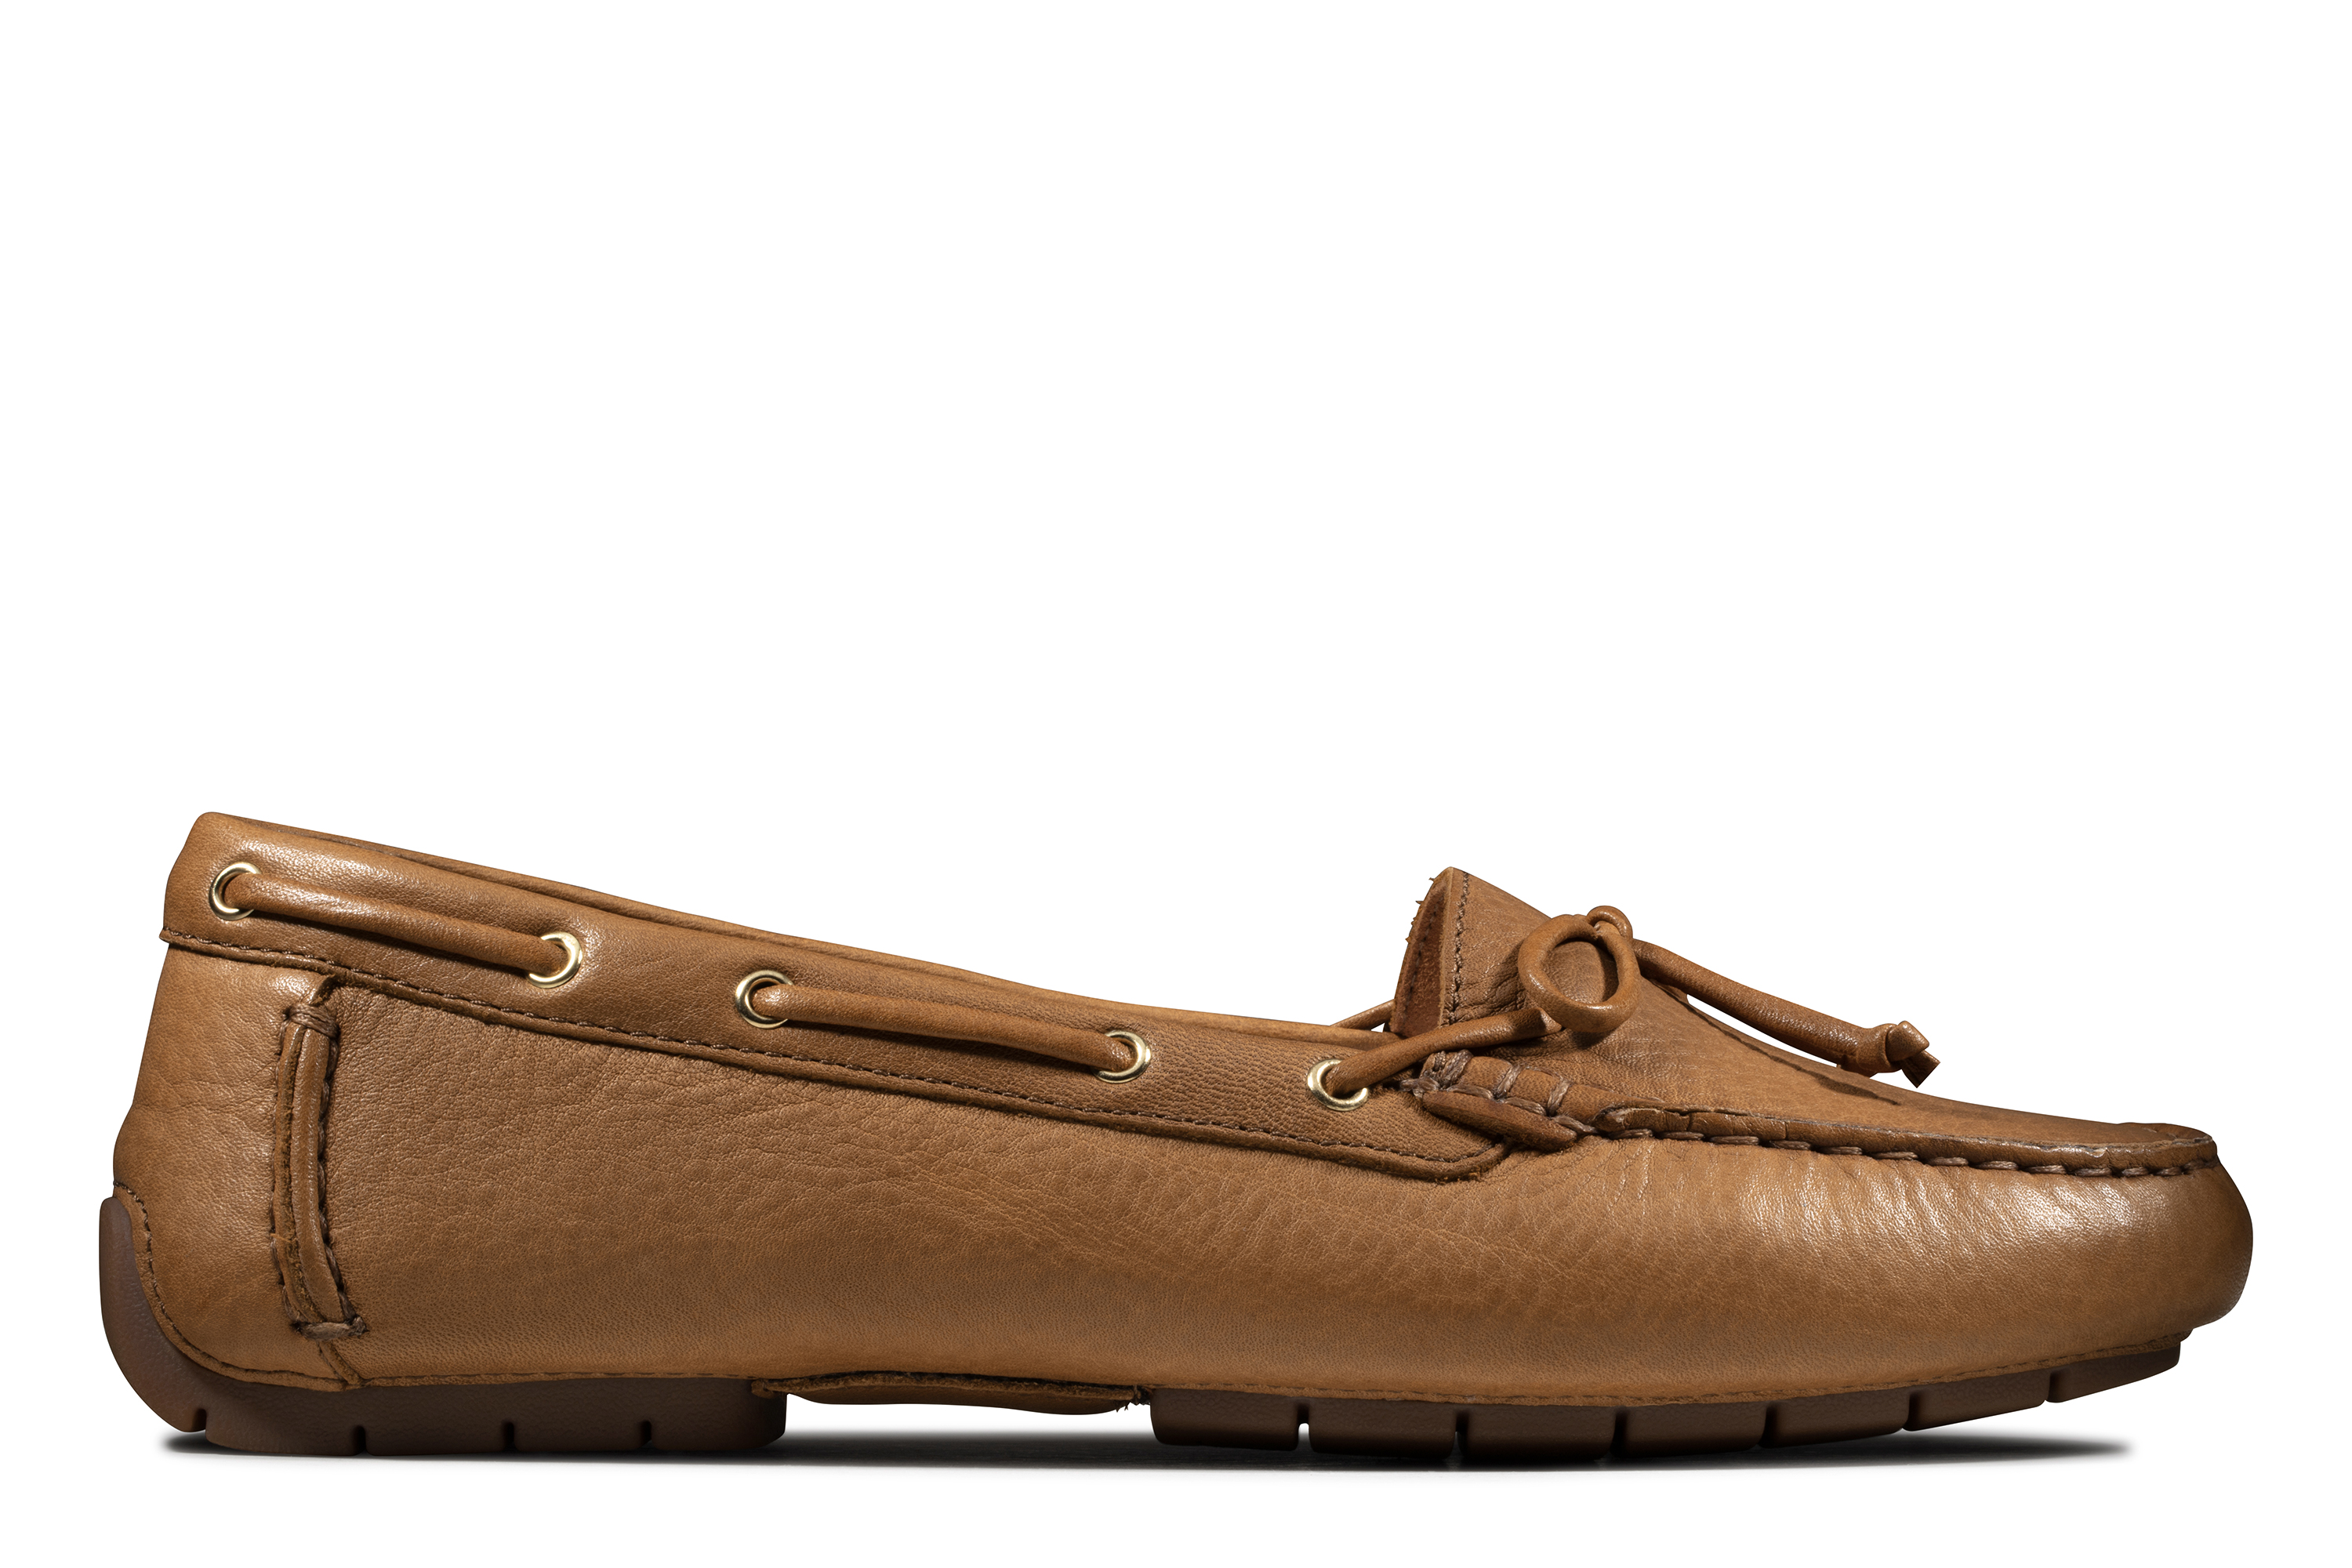 Clarks   C Mocc Boat Tan Leather Boat Shoes